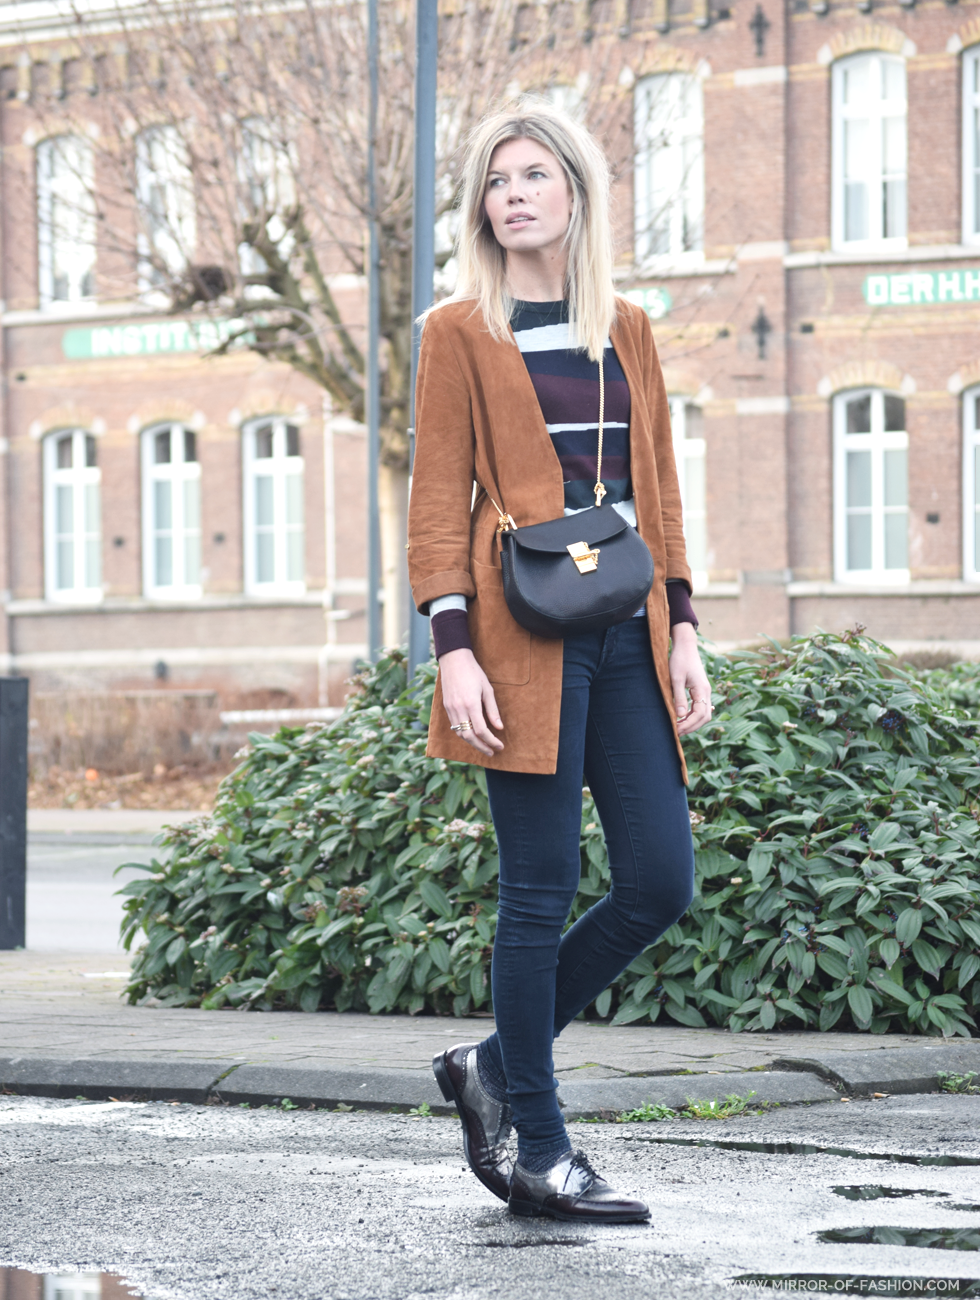 Outfit of the day, Carven, Gigue, Jbrand, Chloé, Esprit, ootd, winter, suede, Chloé Drew